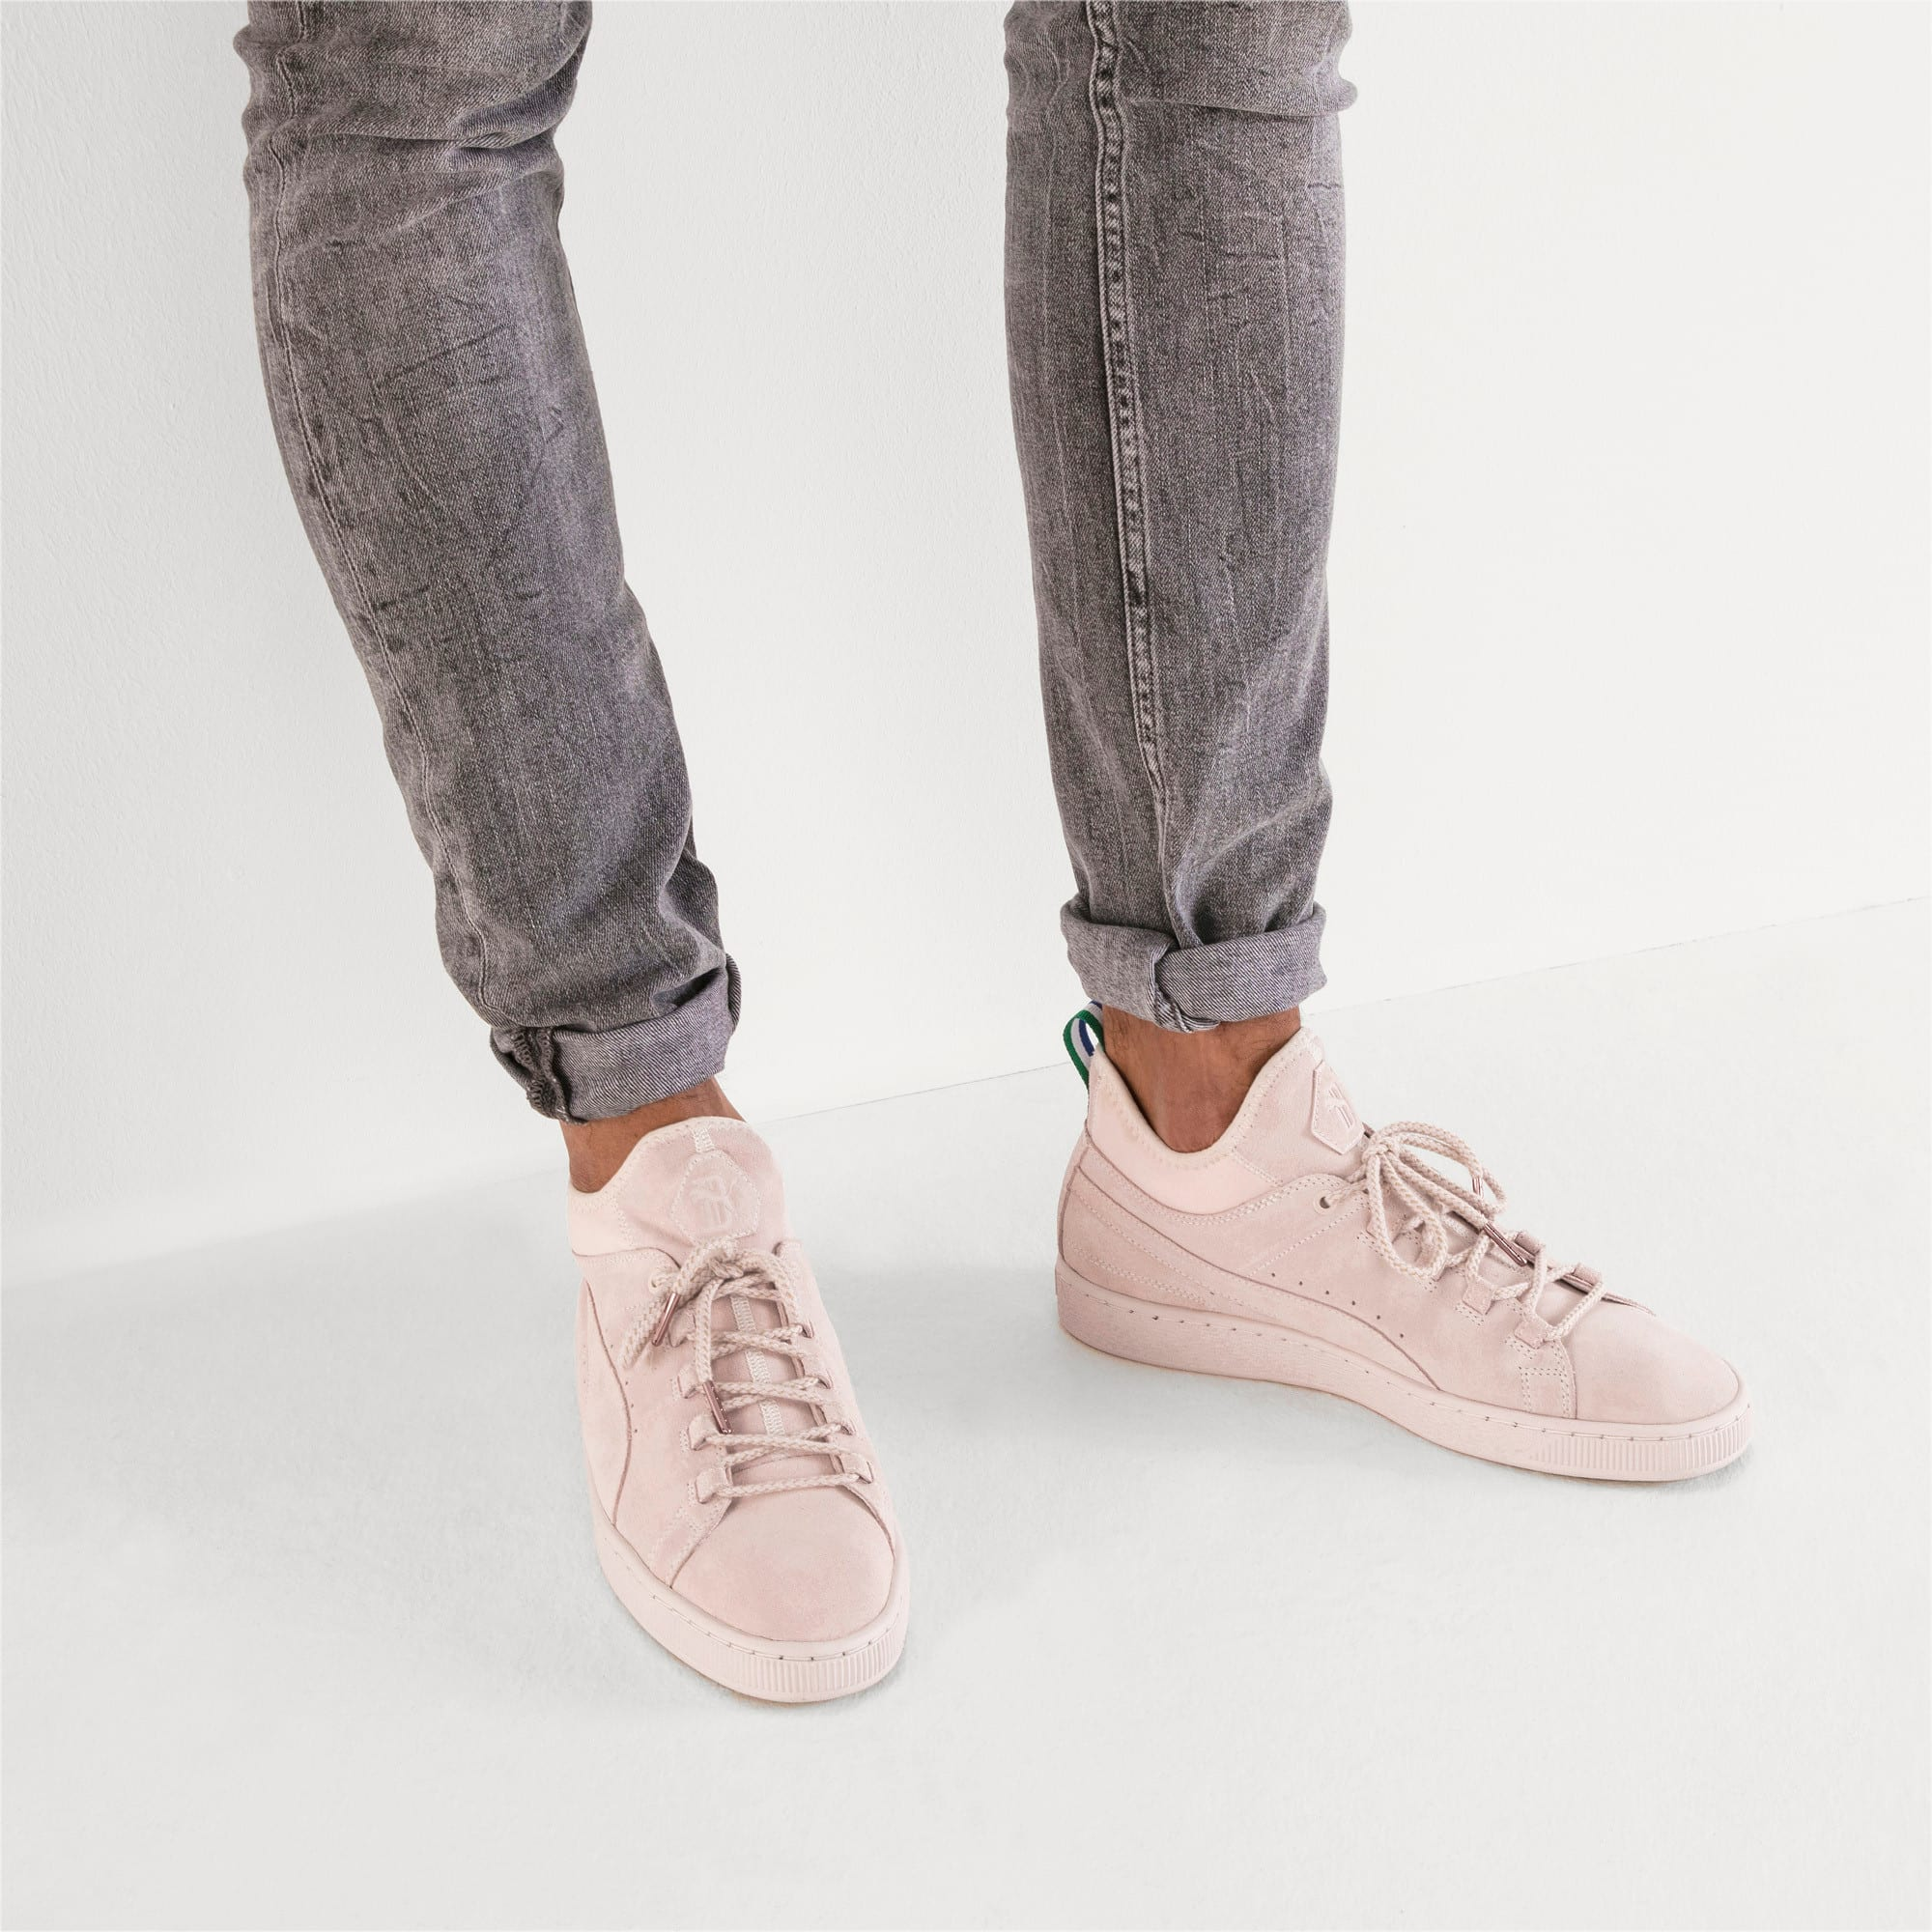 purchase cheap d69d6 4c45e PUMA x BIG SEAN Suede Mid Sneakers